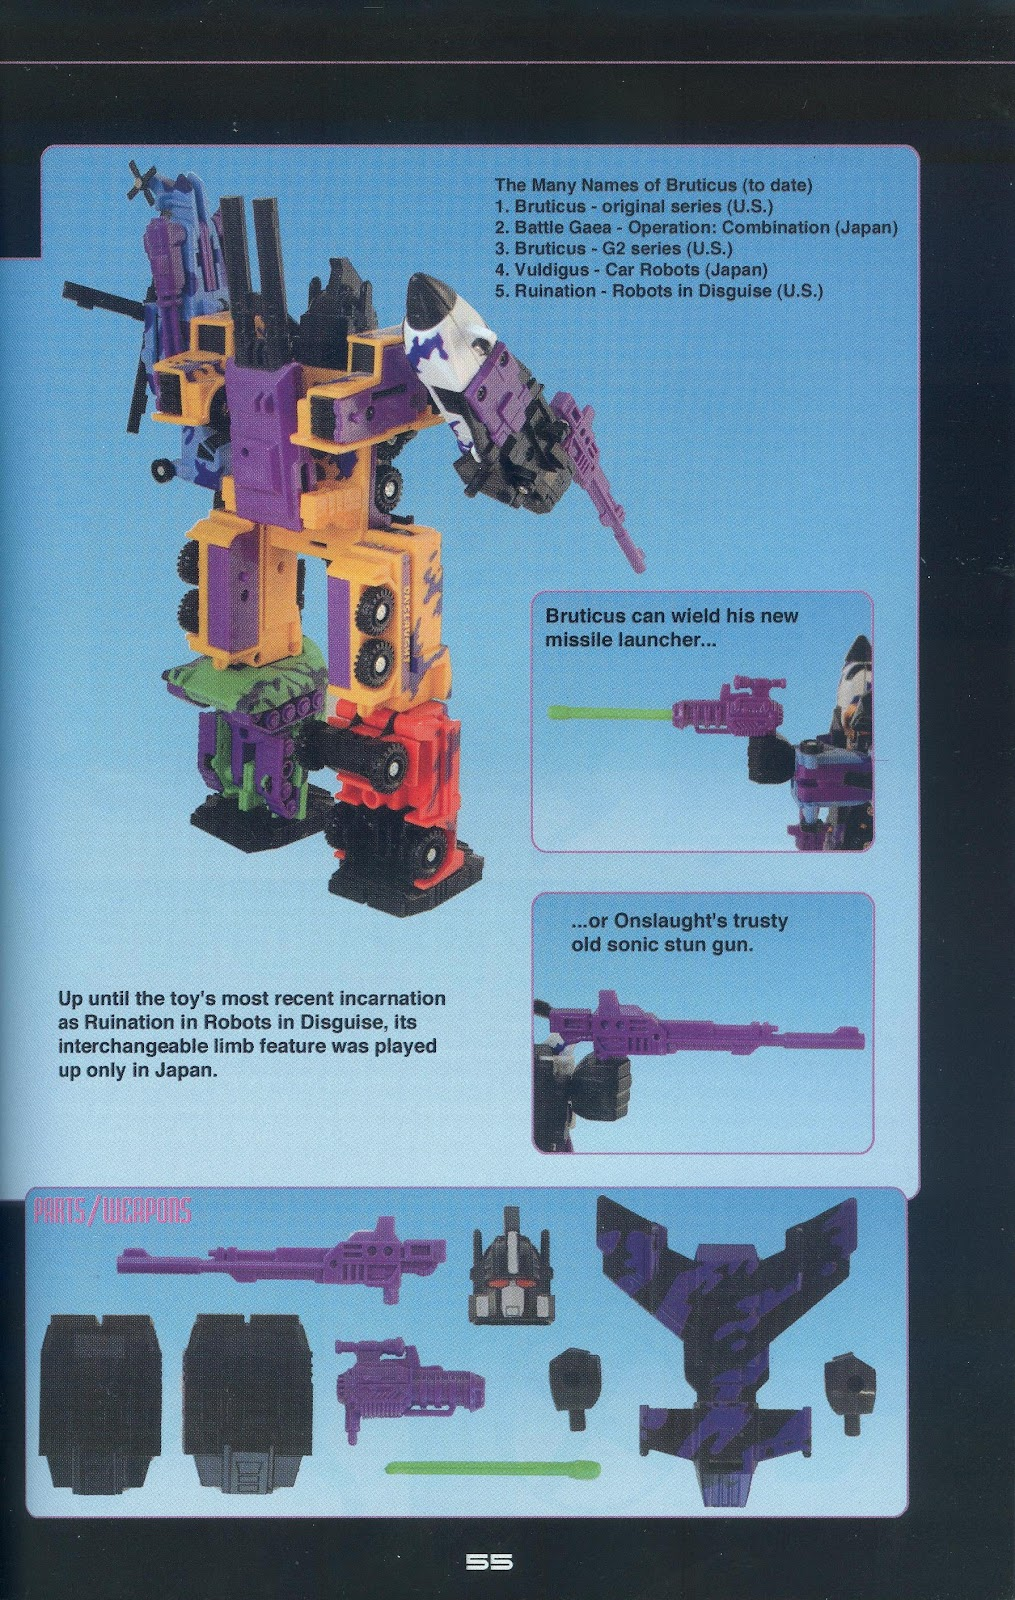 Cybertronian: An Unofficial Transformers Recognition Guide #6 - Read